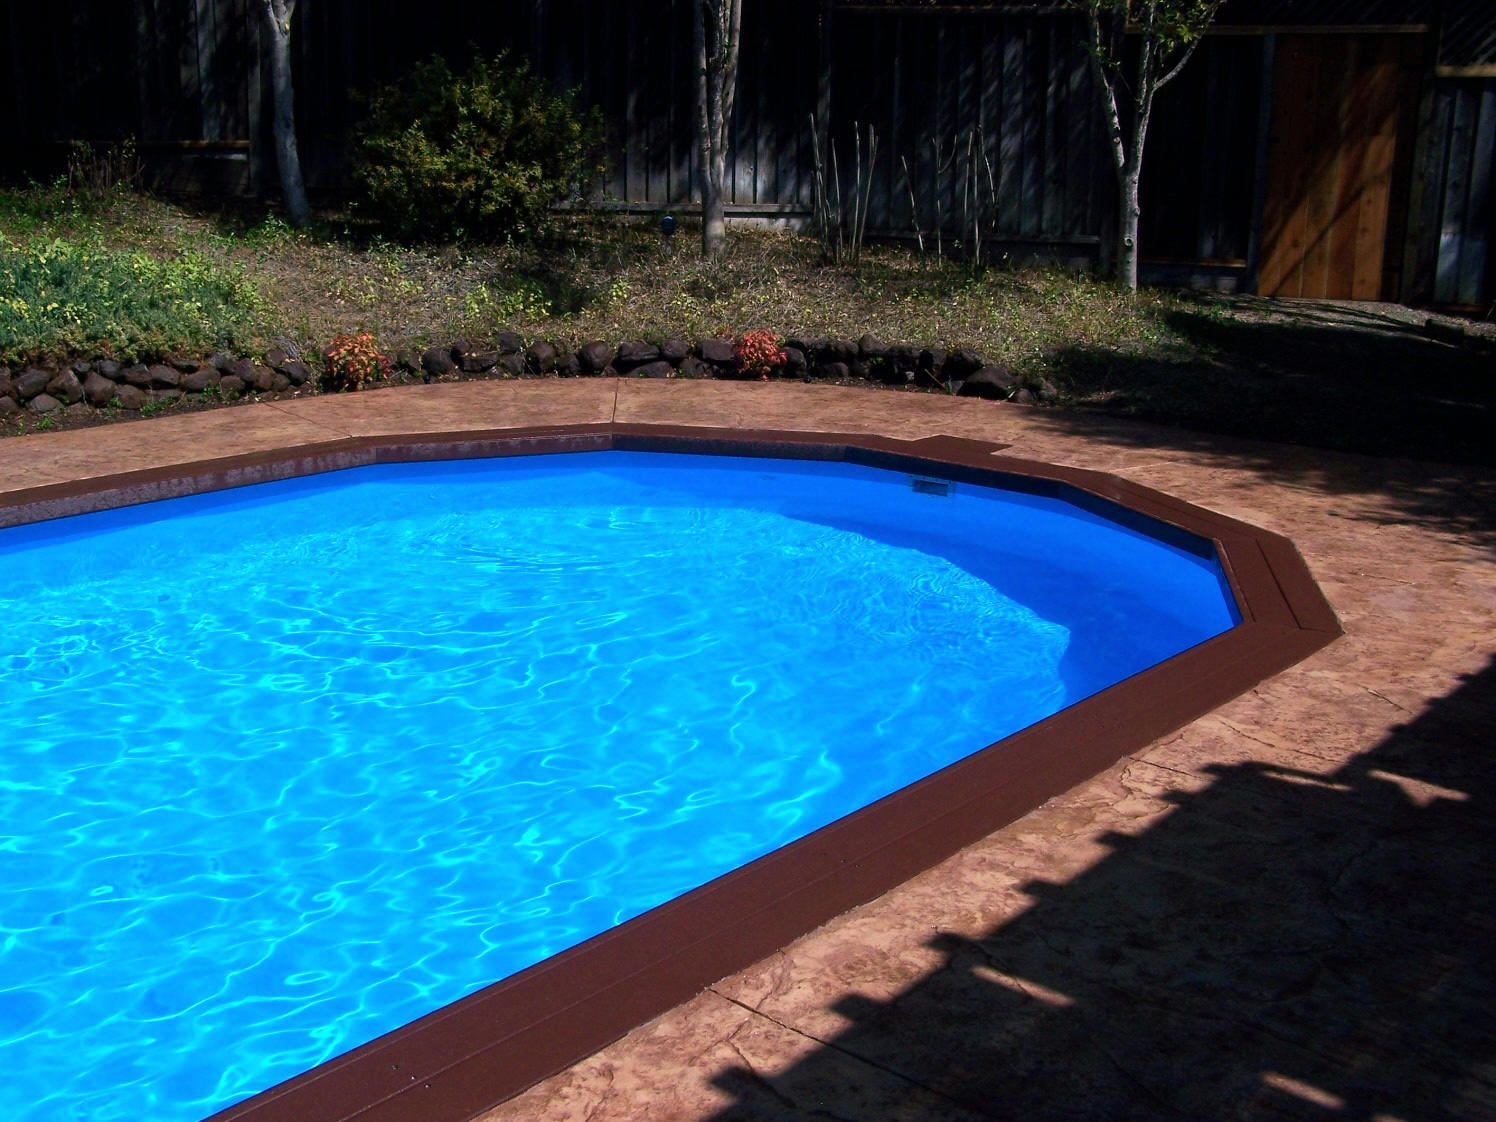 Aboveground Pools Attractive Personalised Home Design